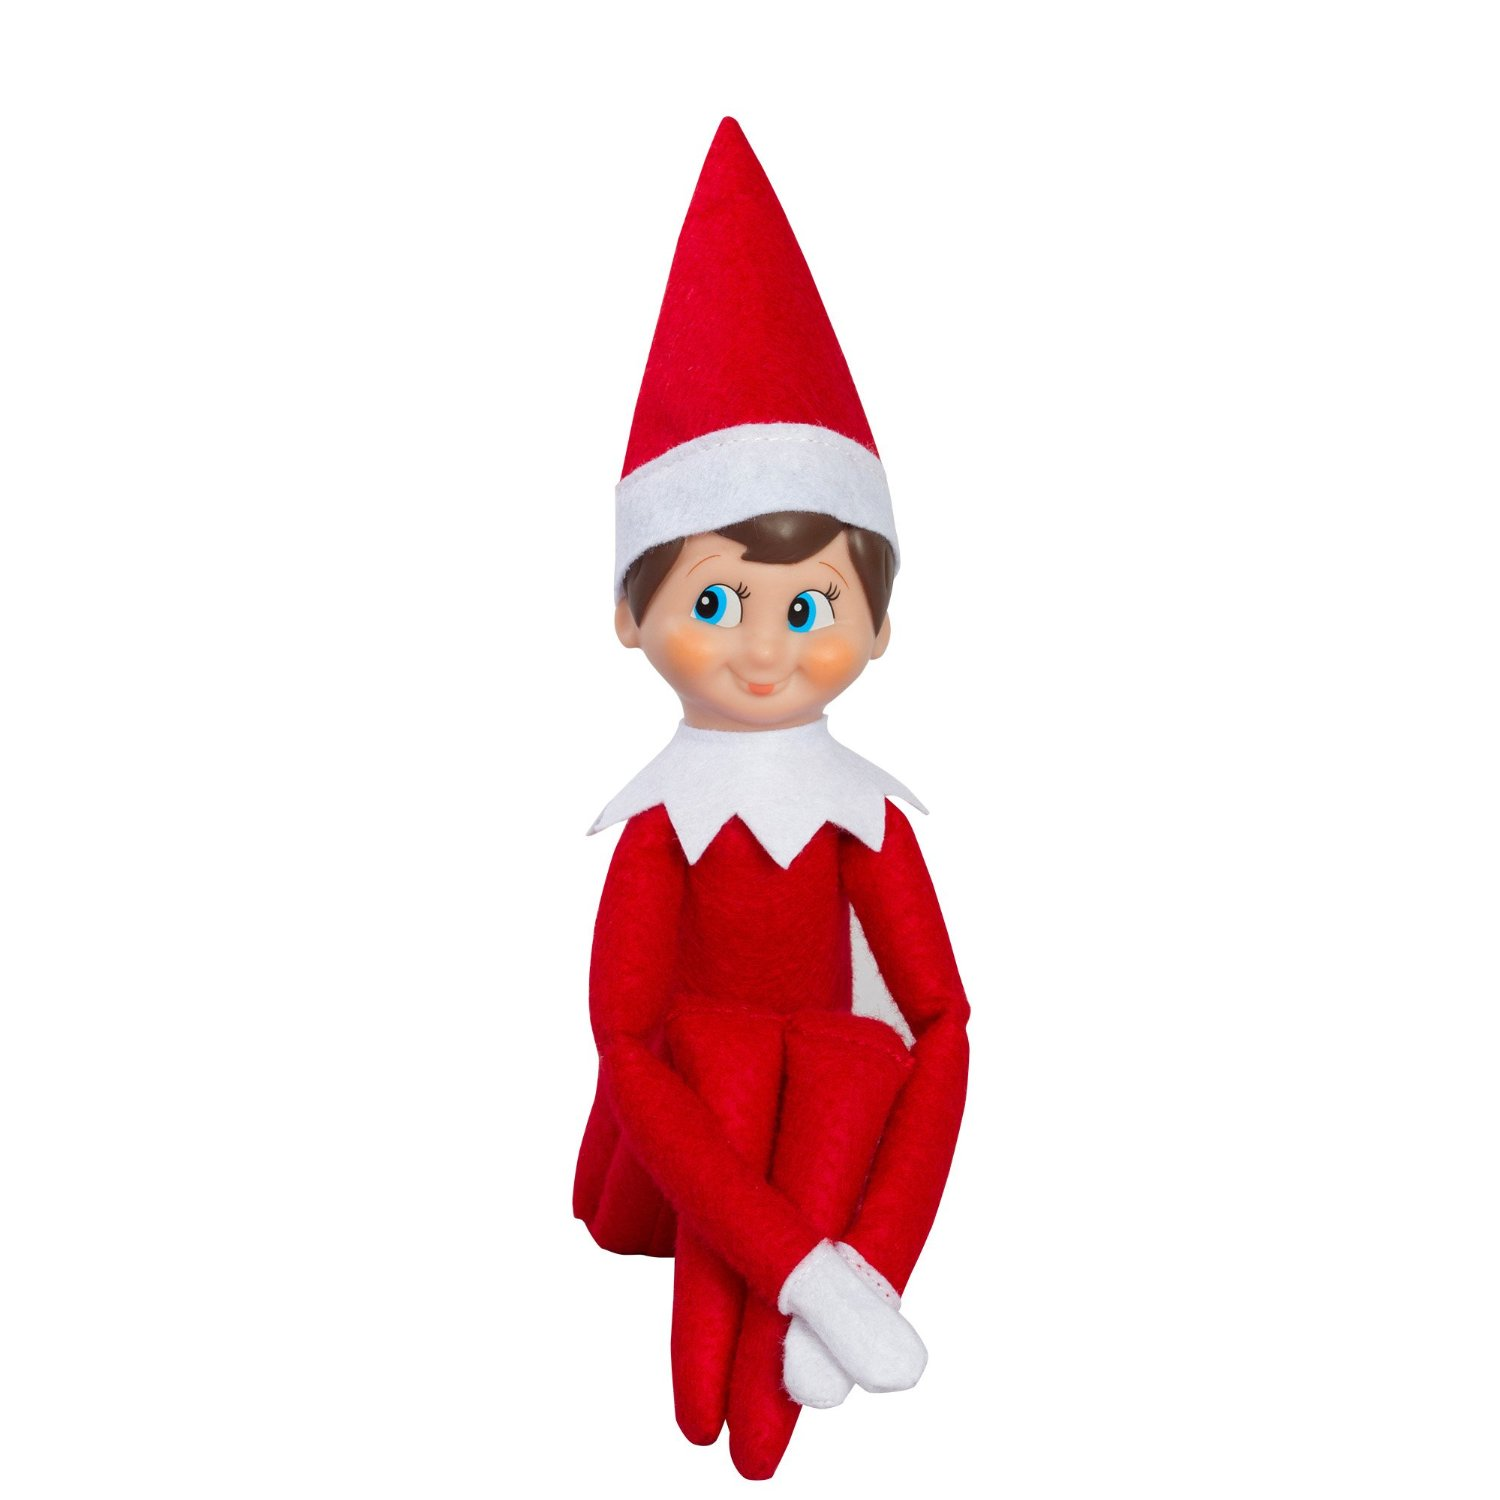 Christmas wouldn't be Christmas without an Elf on the Shelf and Christmas seems to have started early on the internet. A few weeks ago—well before the start of the Christmas season—the.